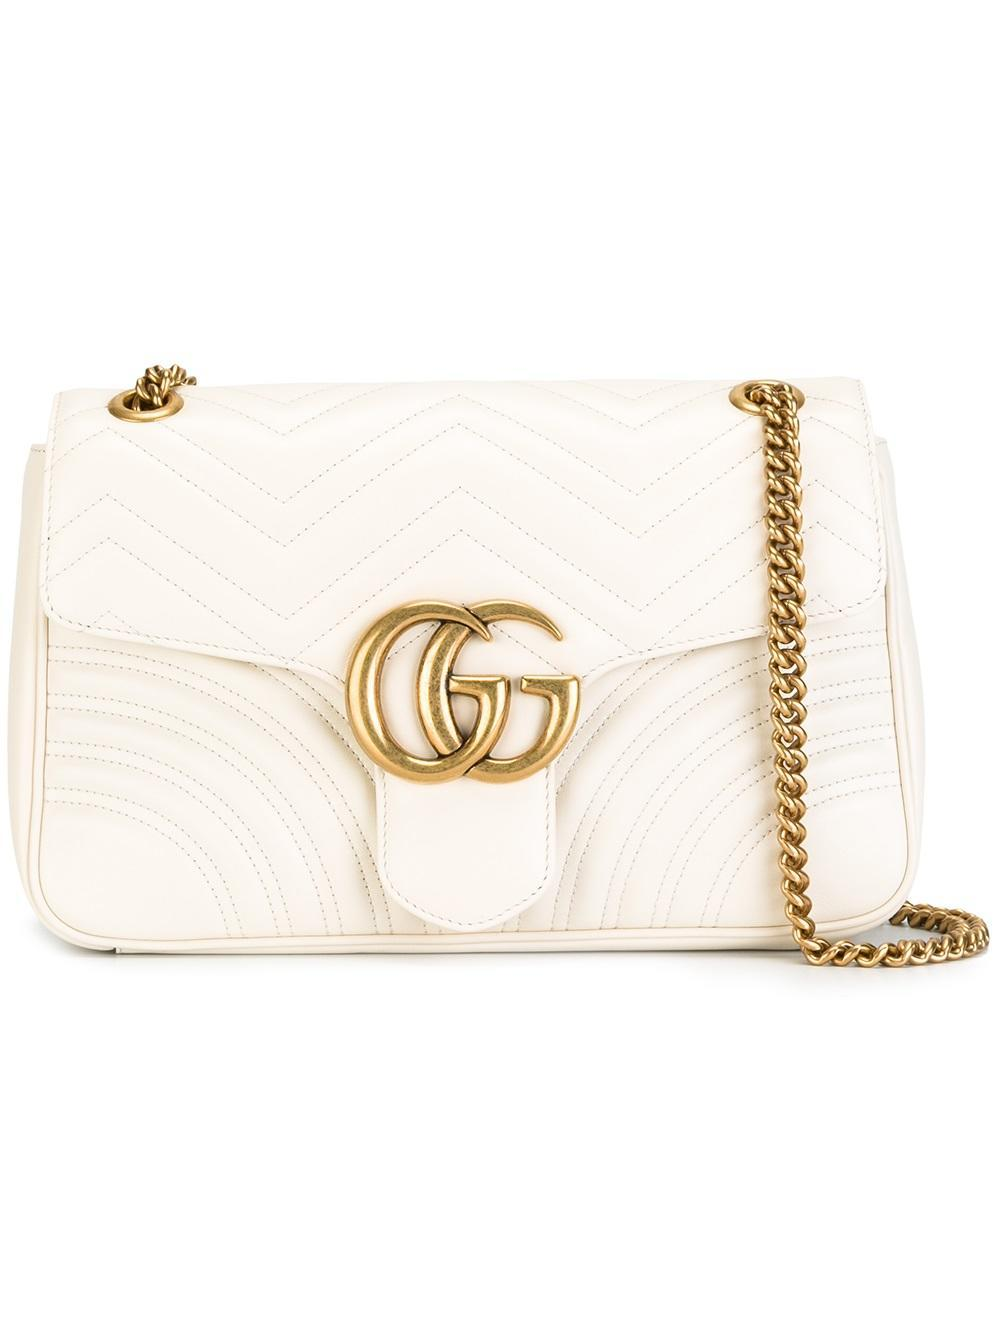 017f2011e6d7 Gucci Gg Marmont Matelassé Shoulder Bag in White - Lyst